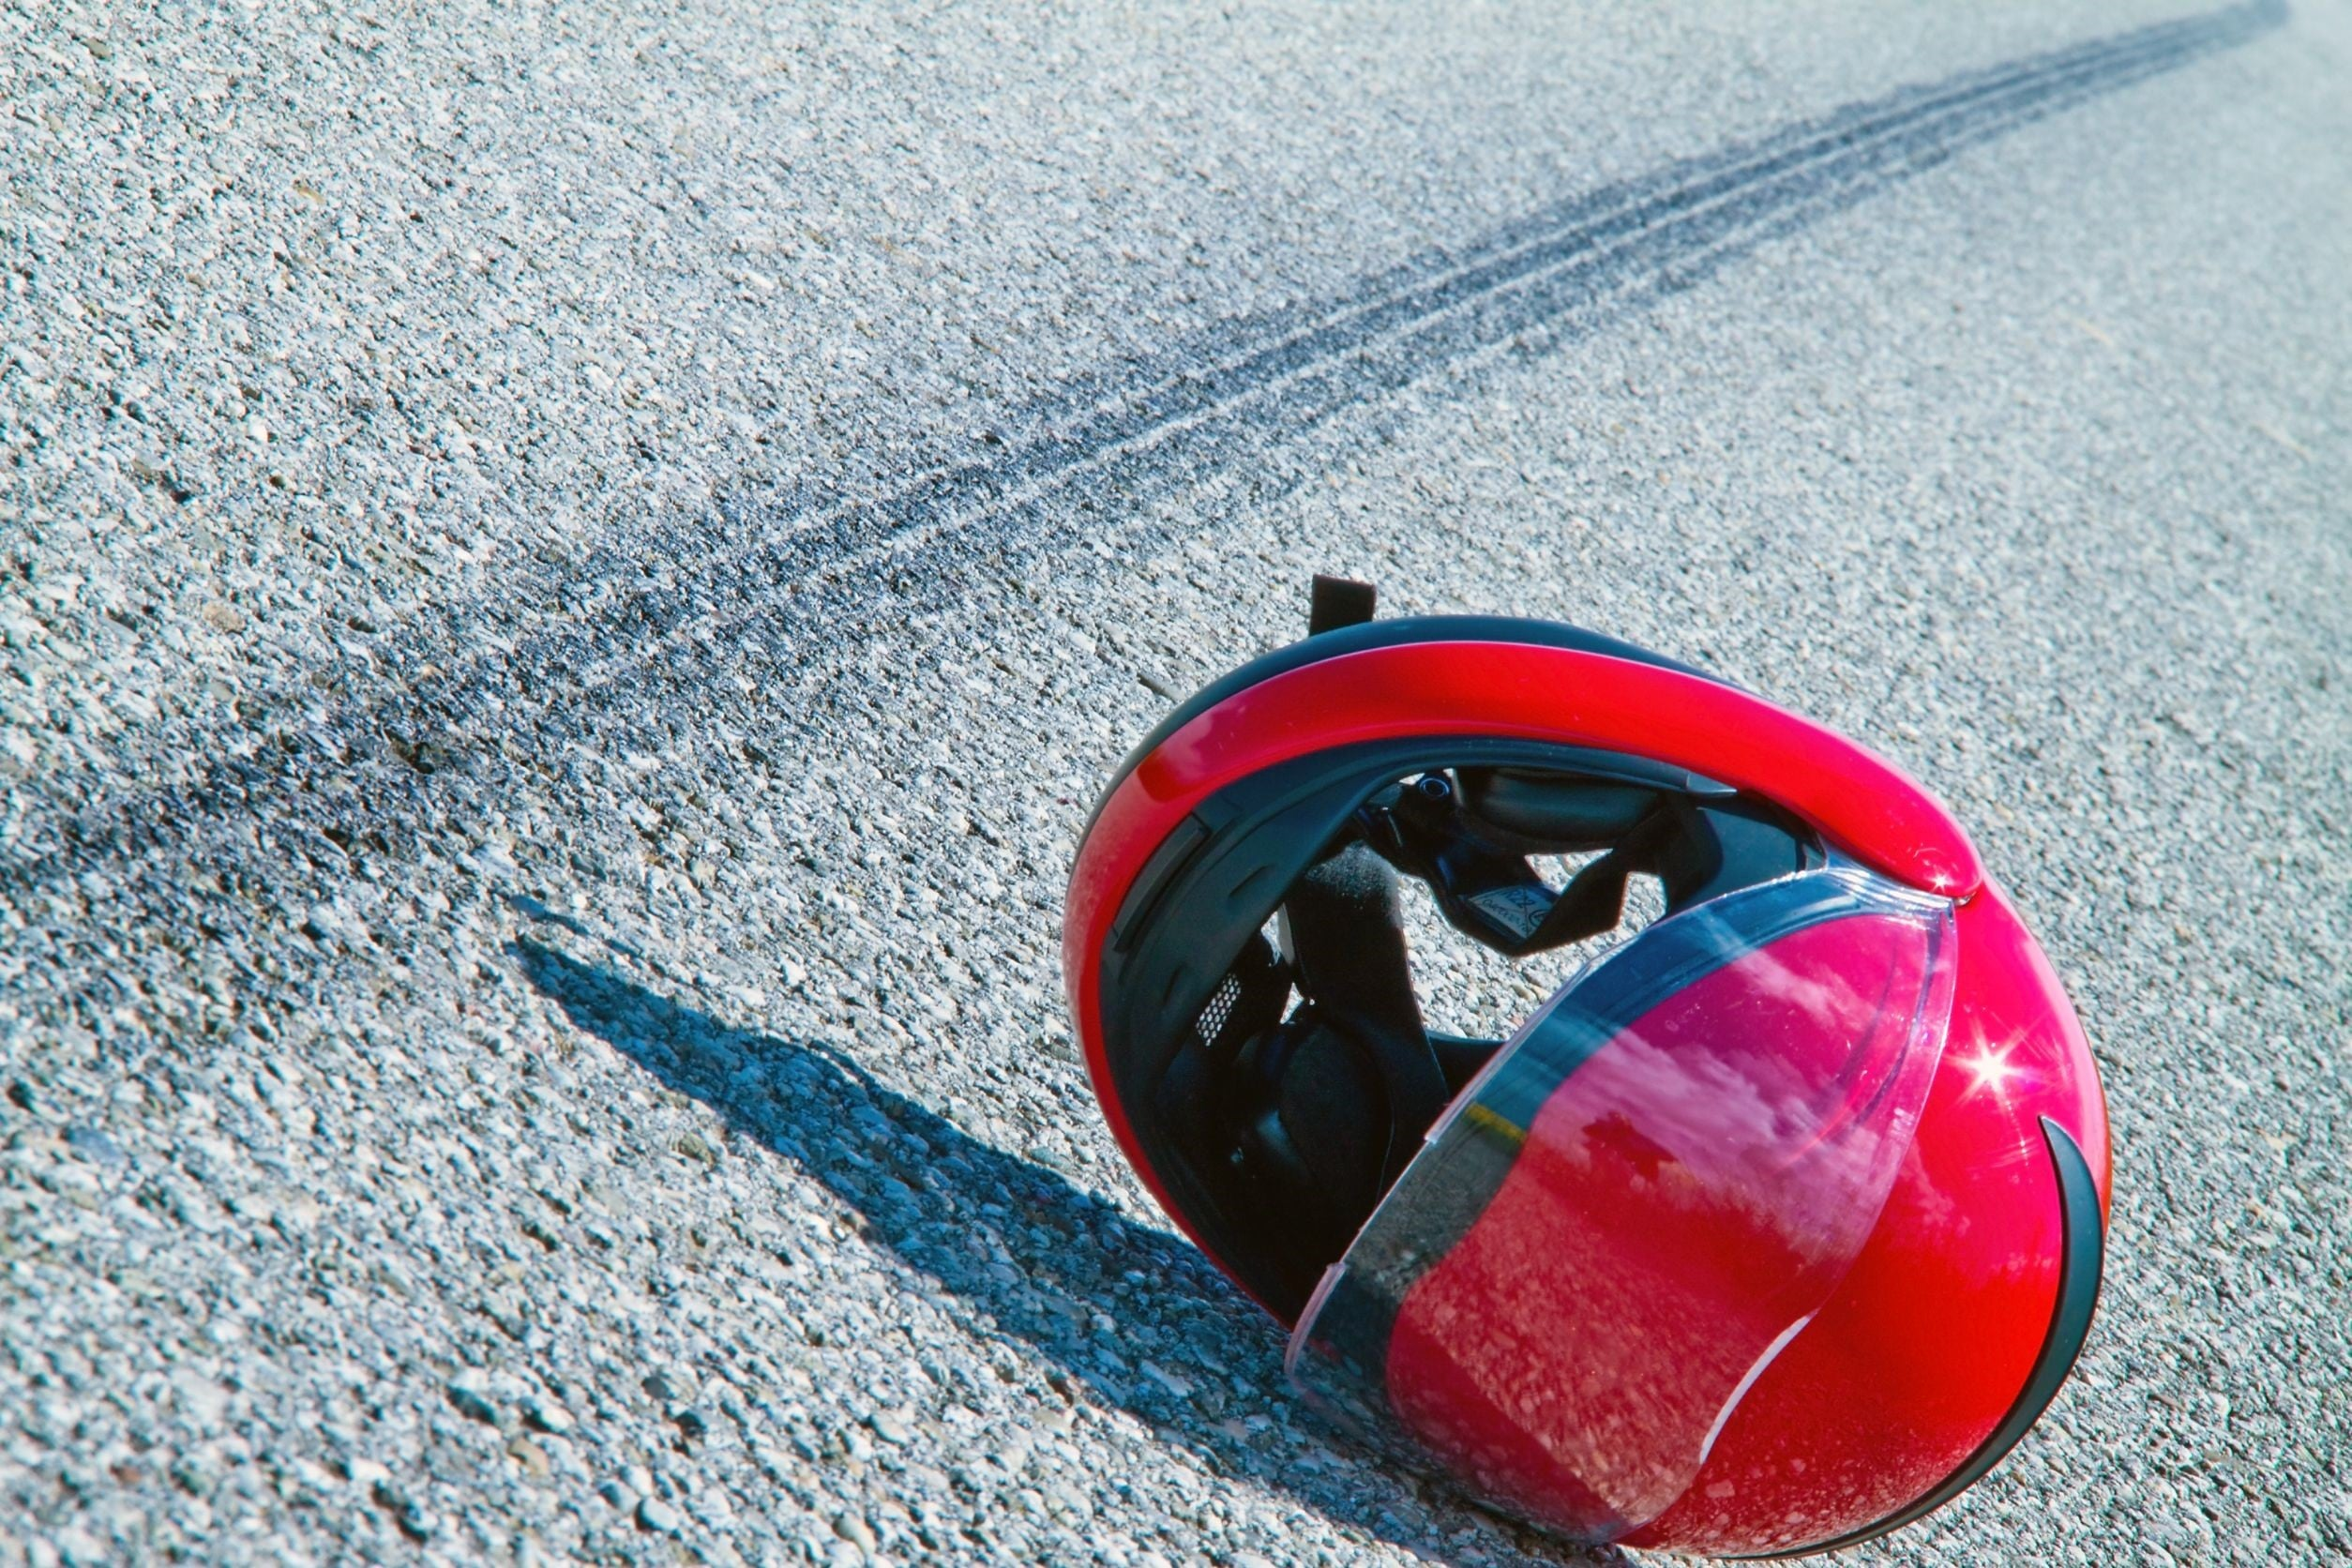 Why Motorcycles Accidents Are More Dangerous Than Car